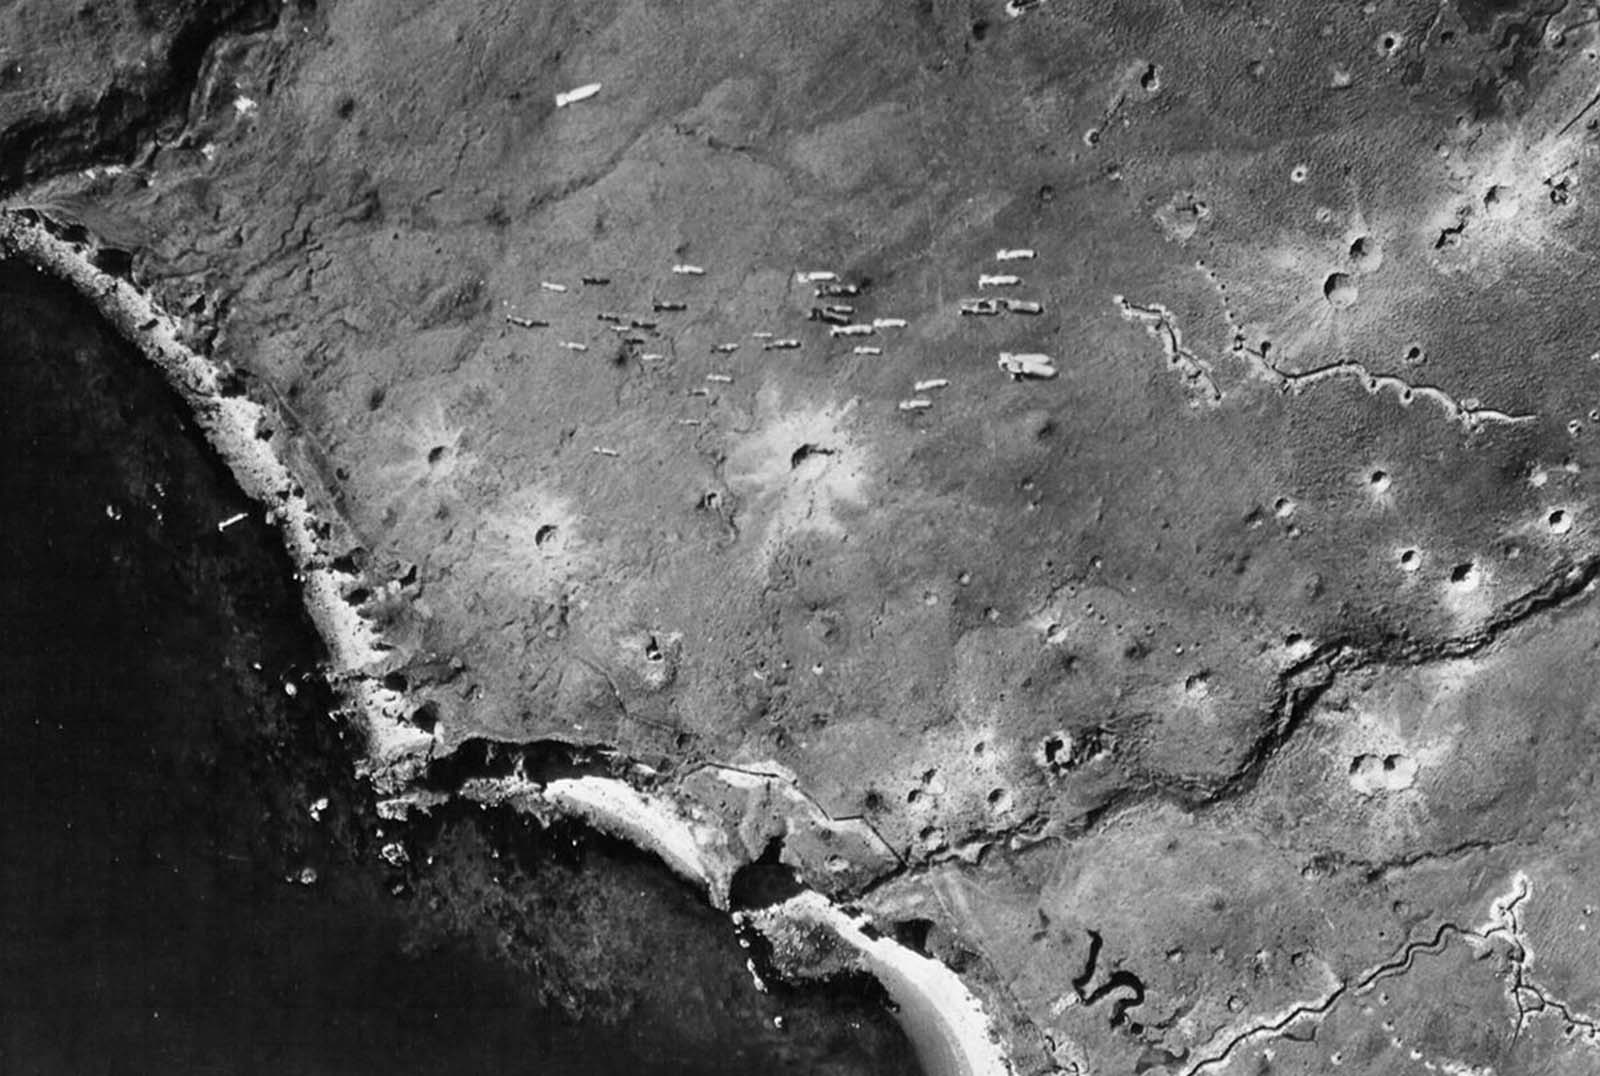 Dozens of bombs fall from a U.S. bomber toward Japanese-occupied Kiska Island, Alaska, on August 10, 1943. Note the craters from previous bombing runs and the zig-zag trenches dug by the Japanese.